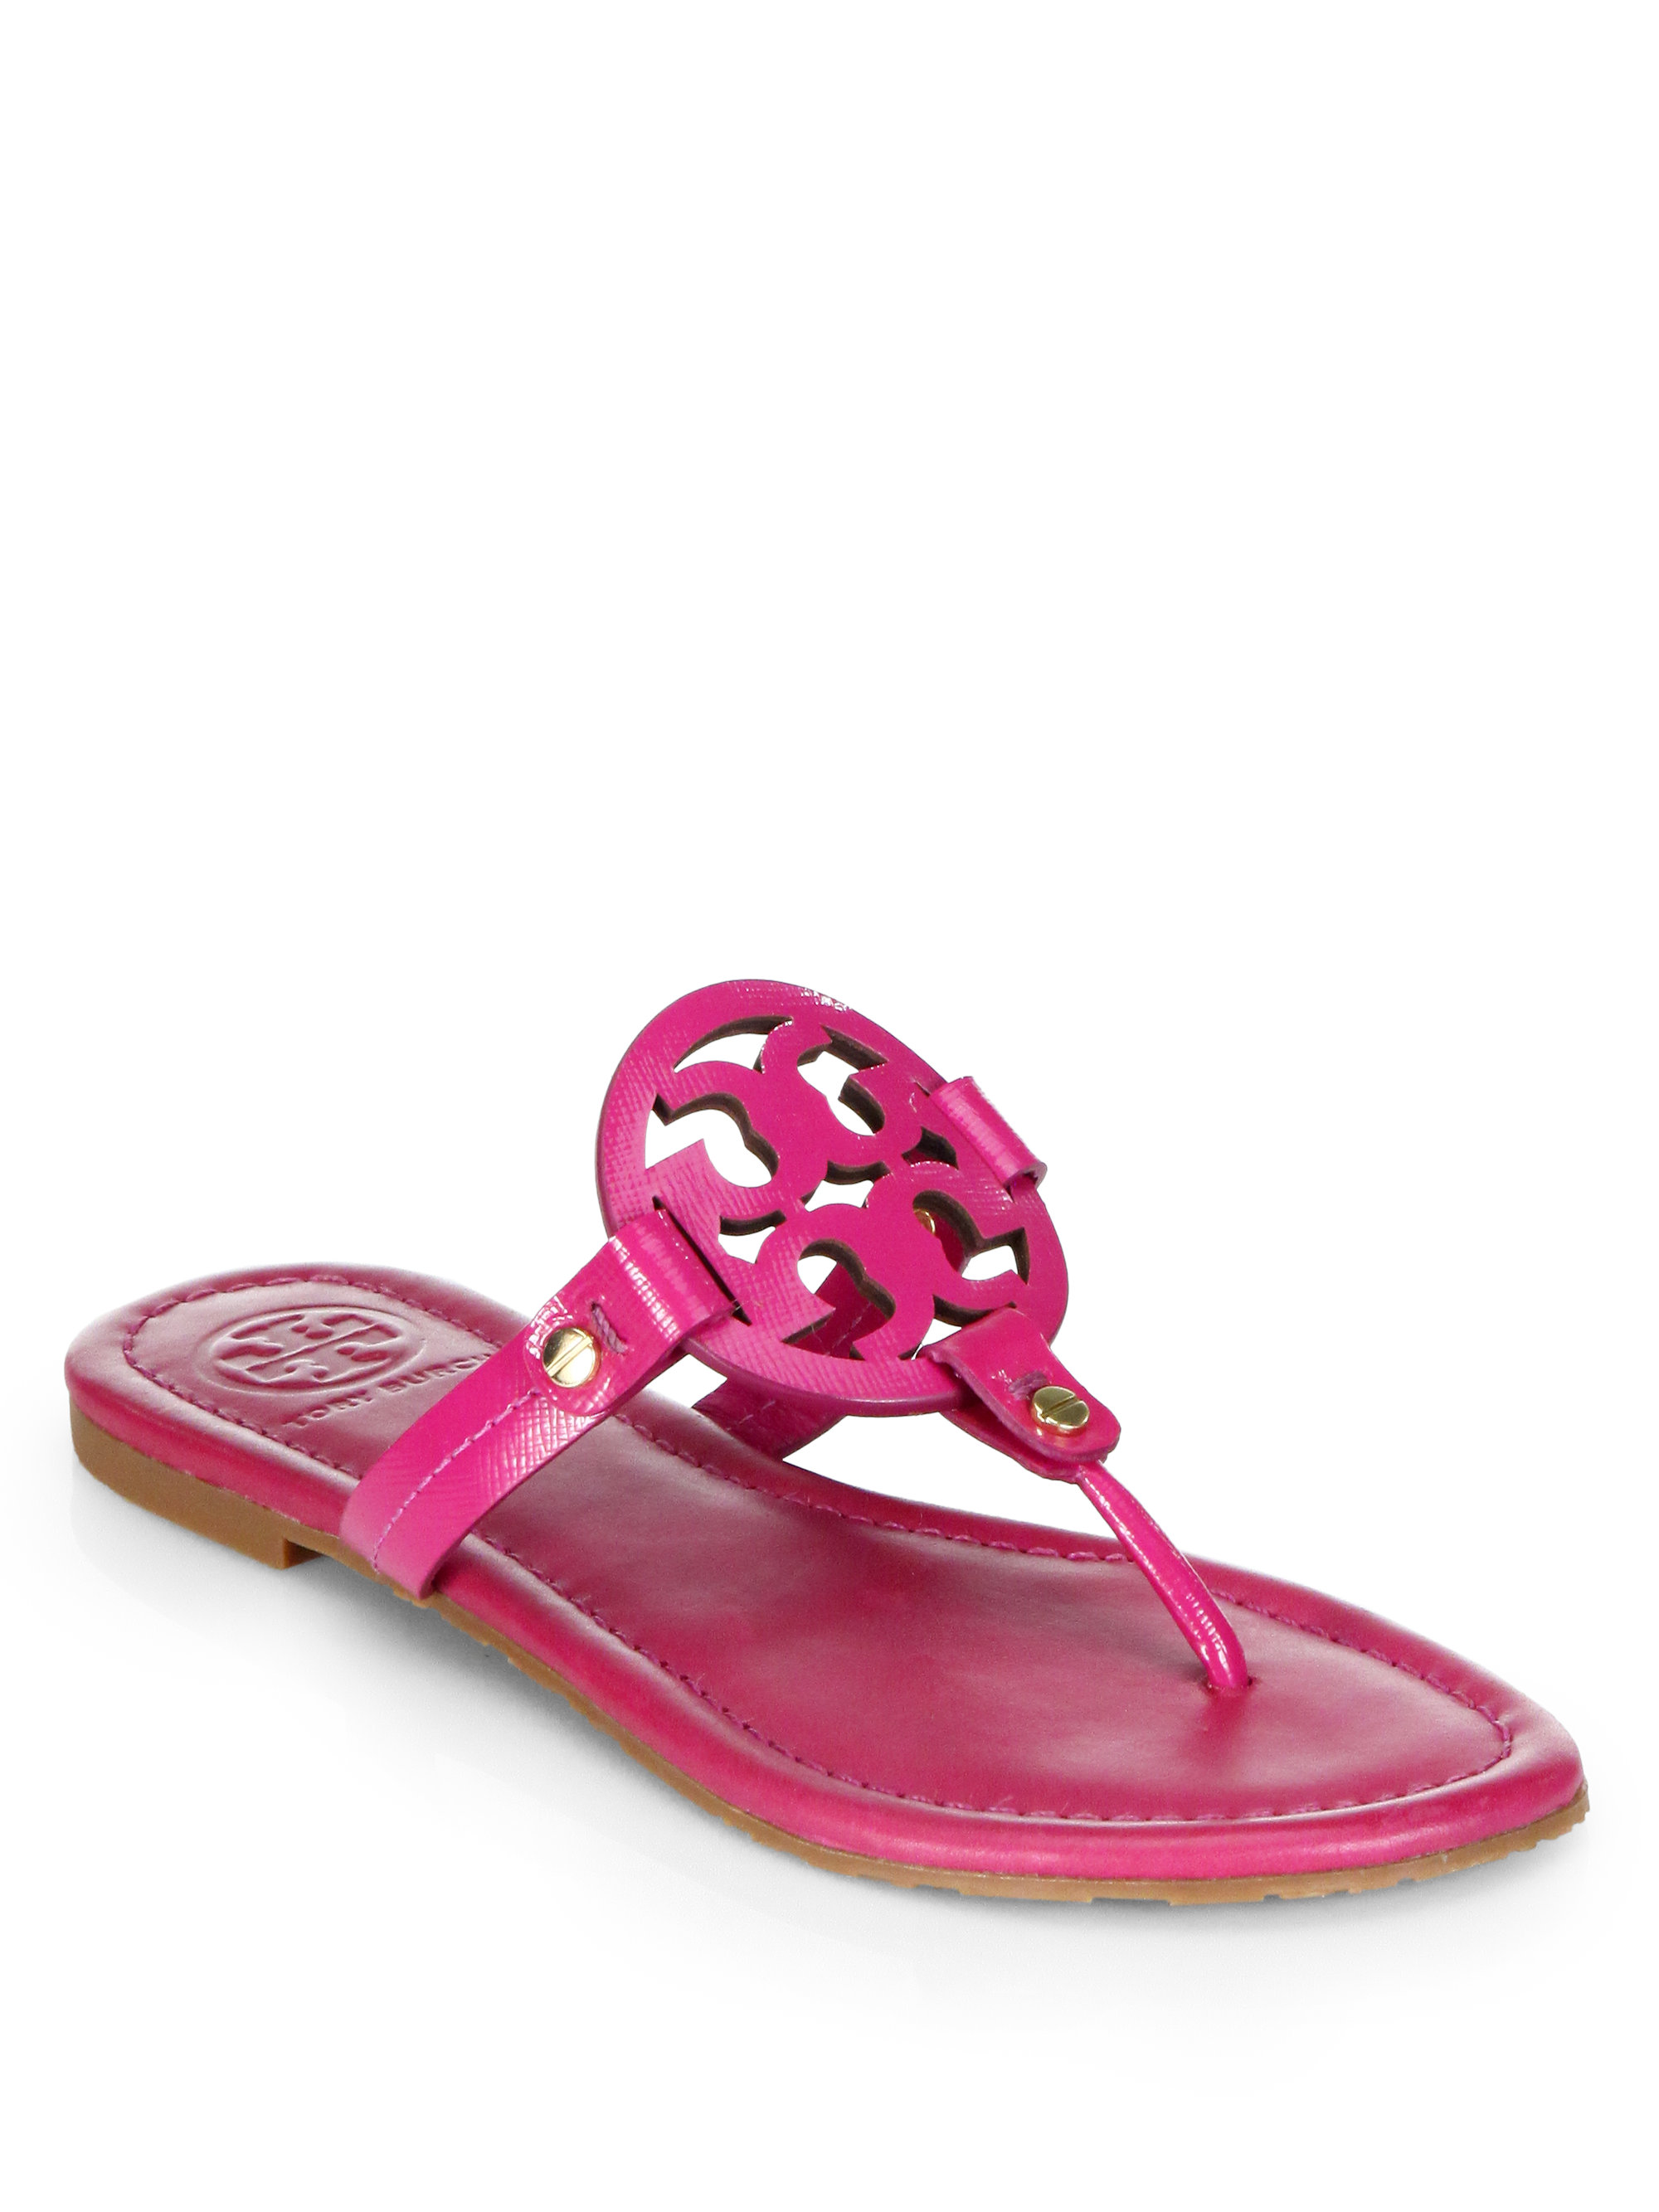 04c76918f551 Lyst - Tory Burch Miller Patent Leather Thong Sandals in Pink